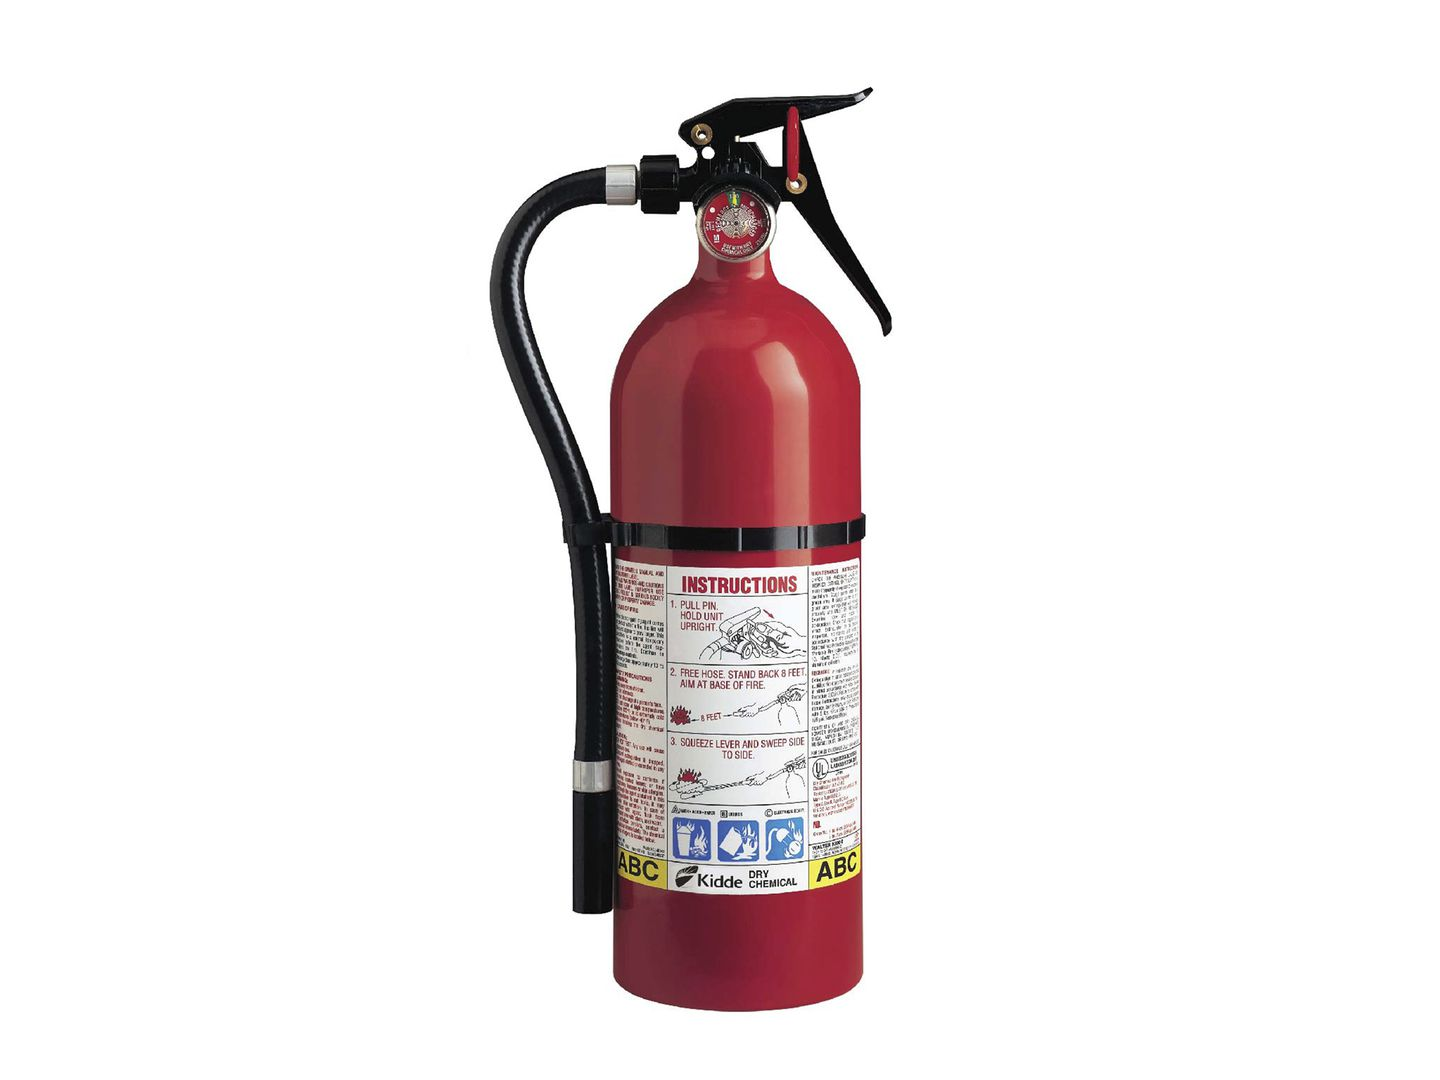 Here S The Full List Of 142 Fire Extinguisher Models